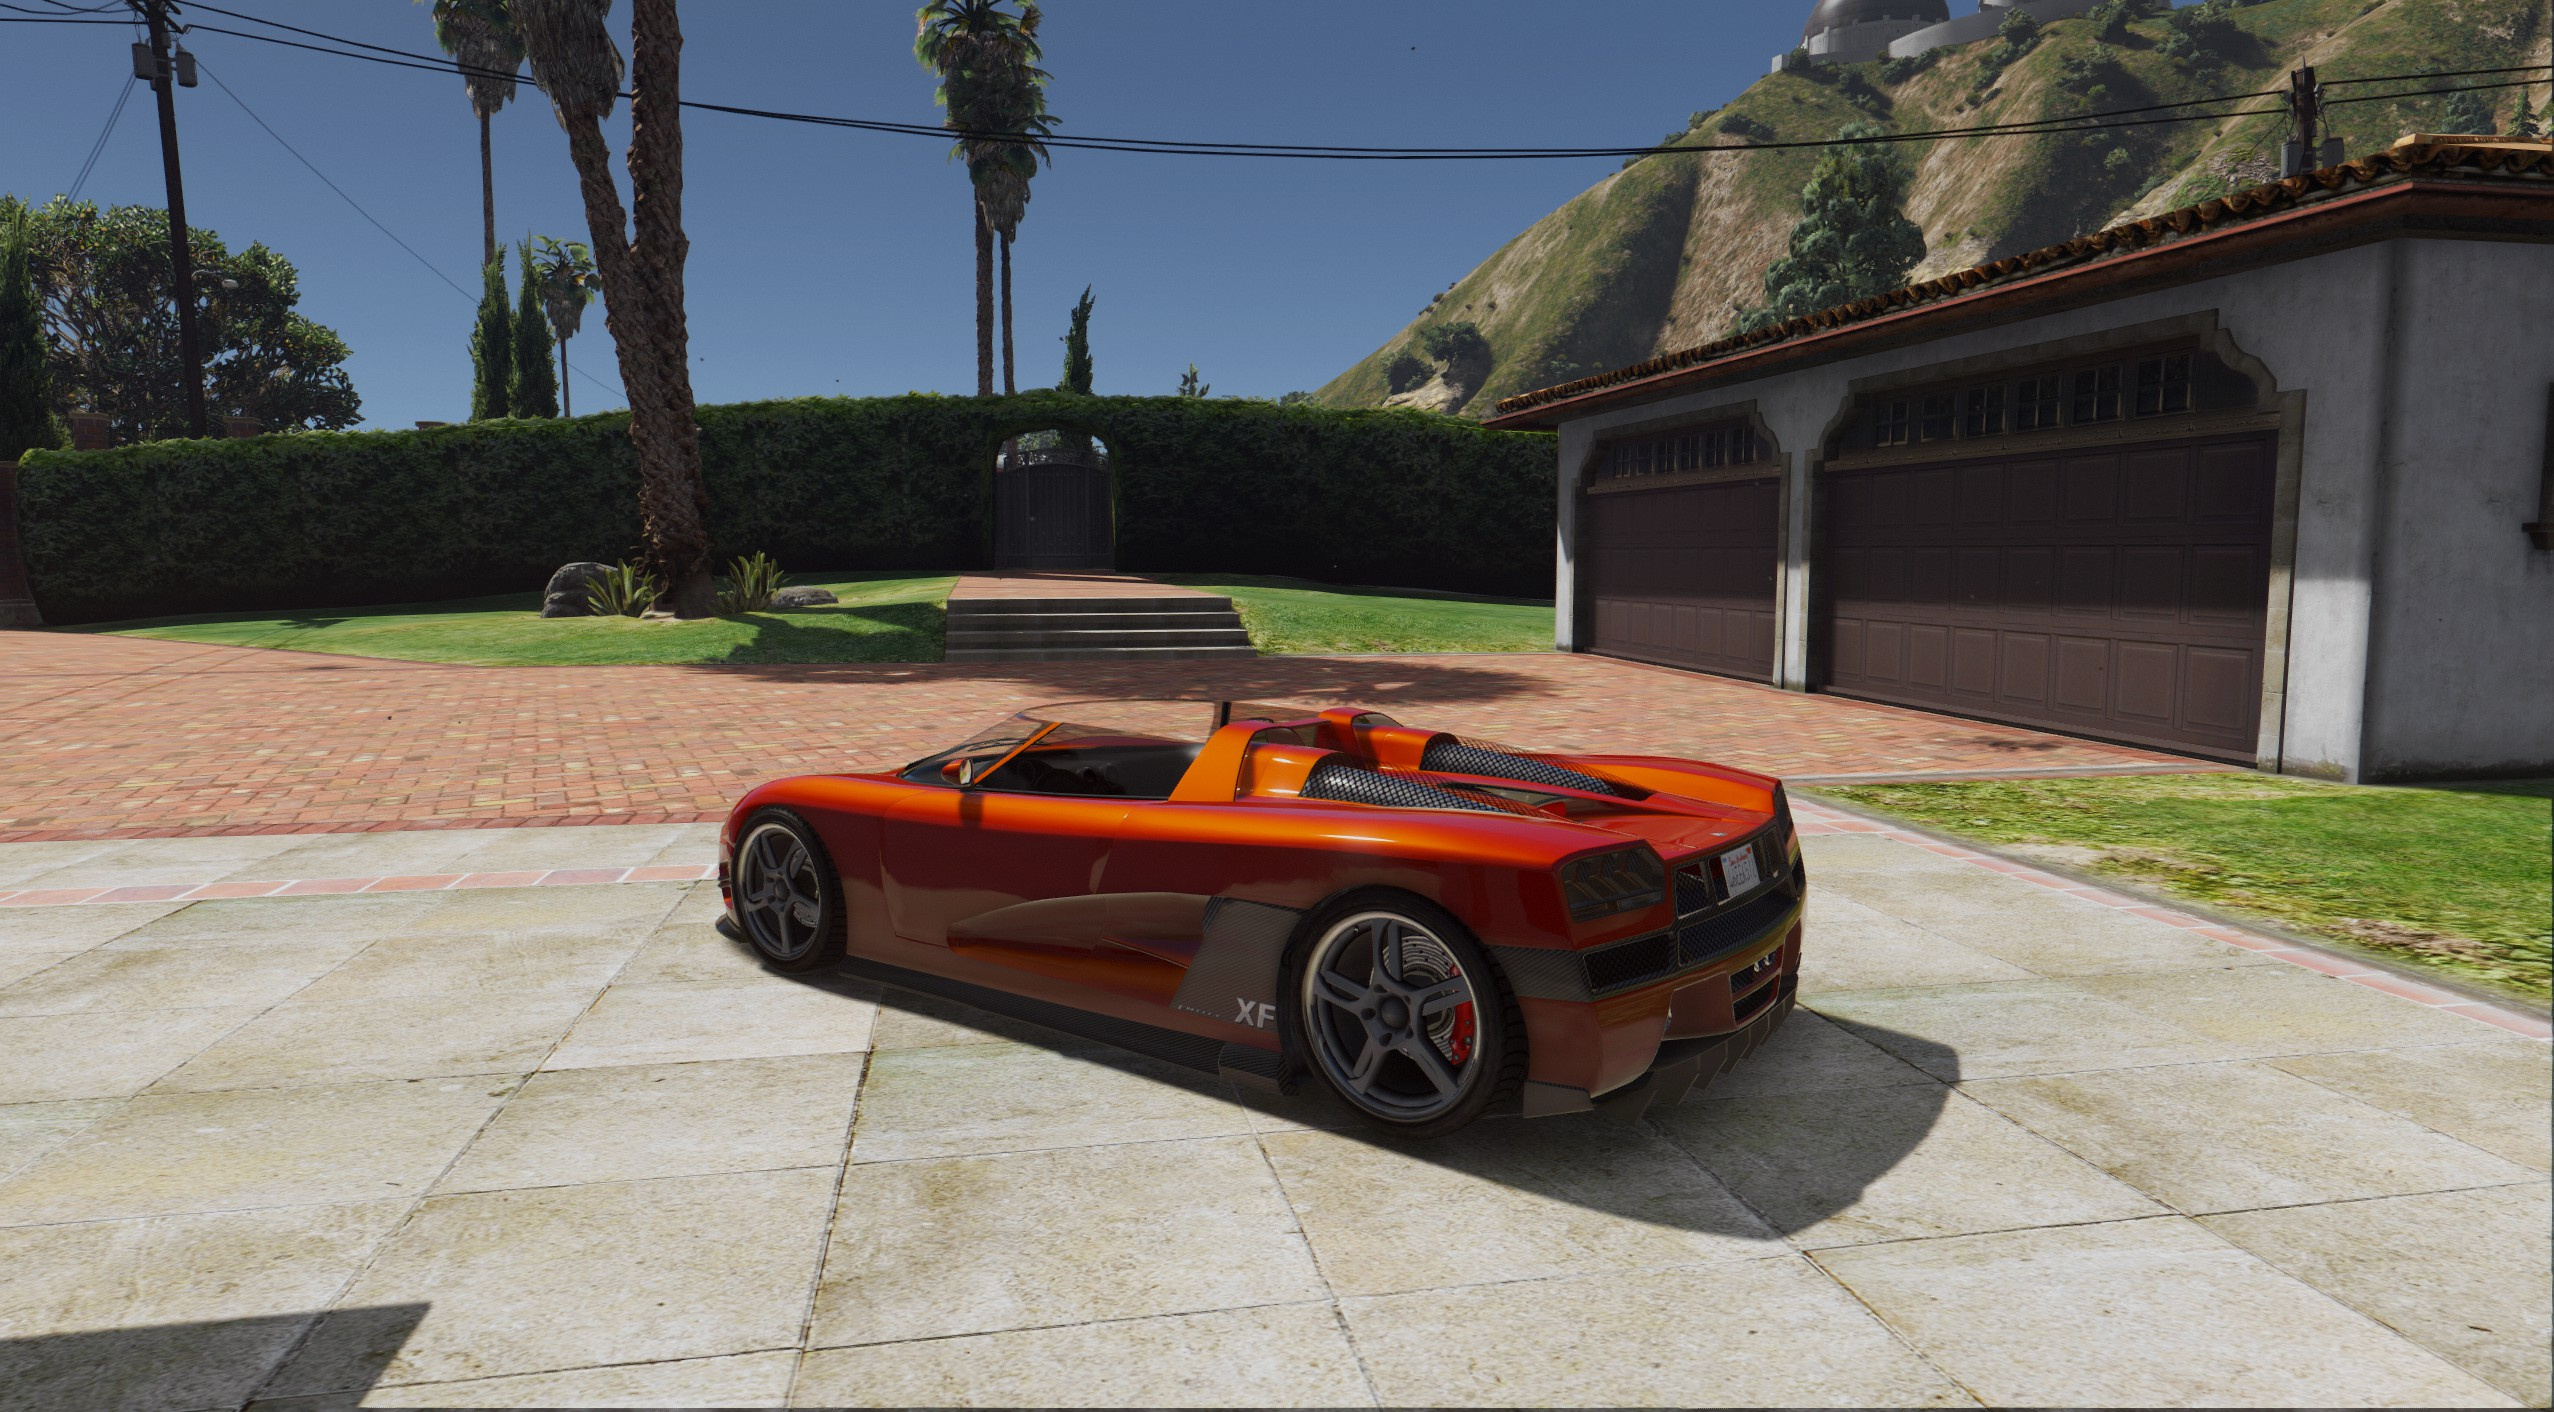 Gta 5 Entity Xf In Real Life entity - DriverLayer S...